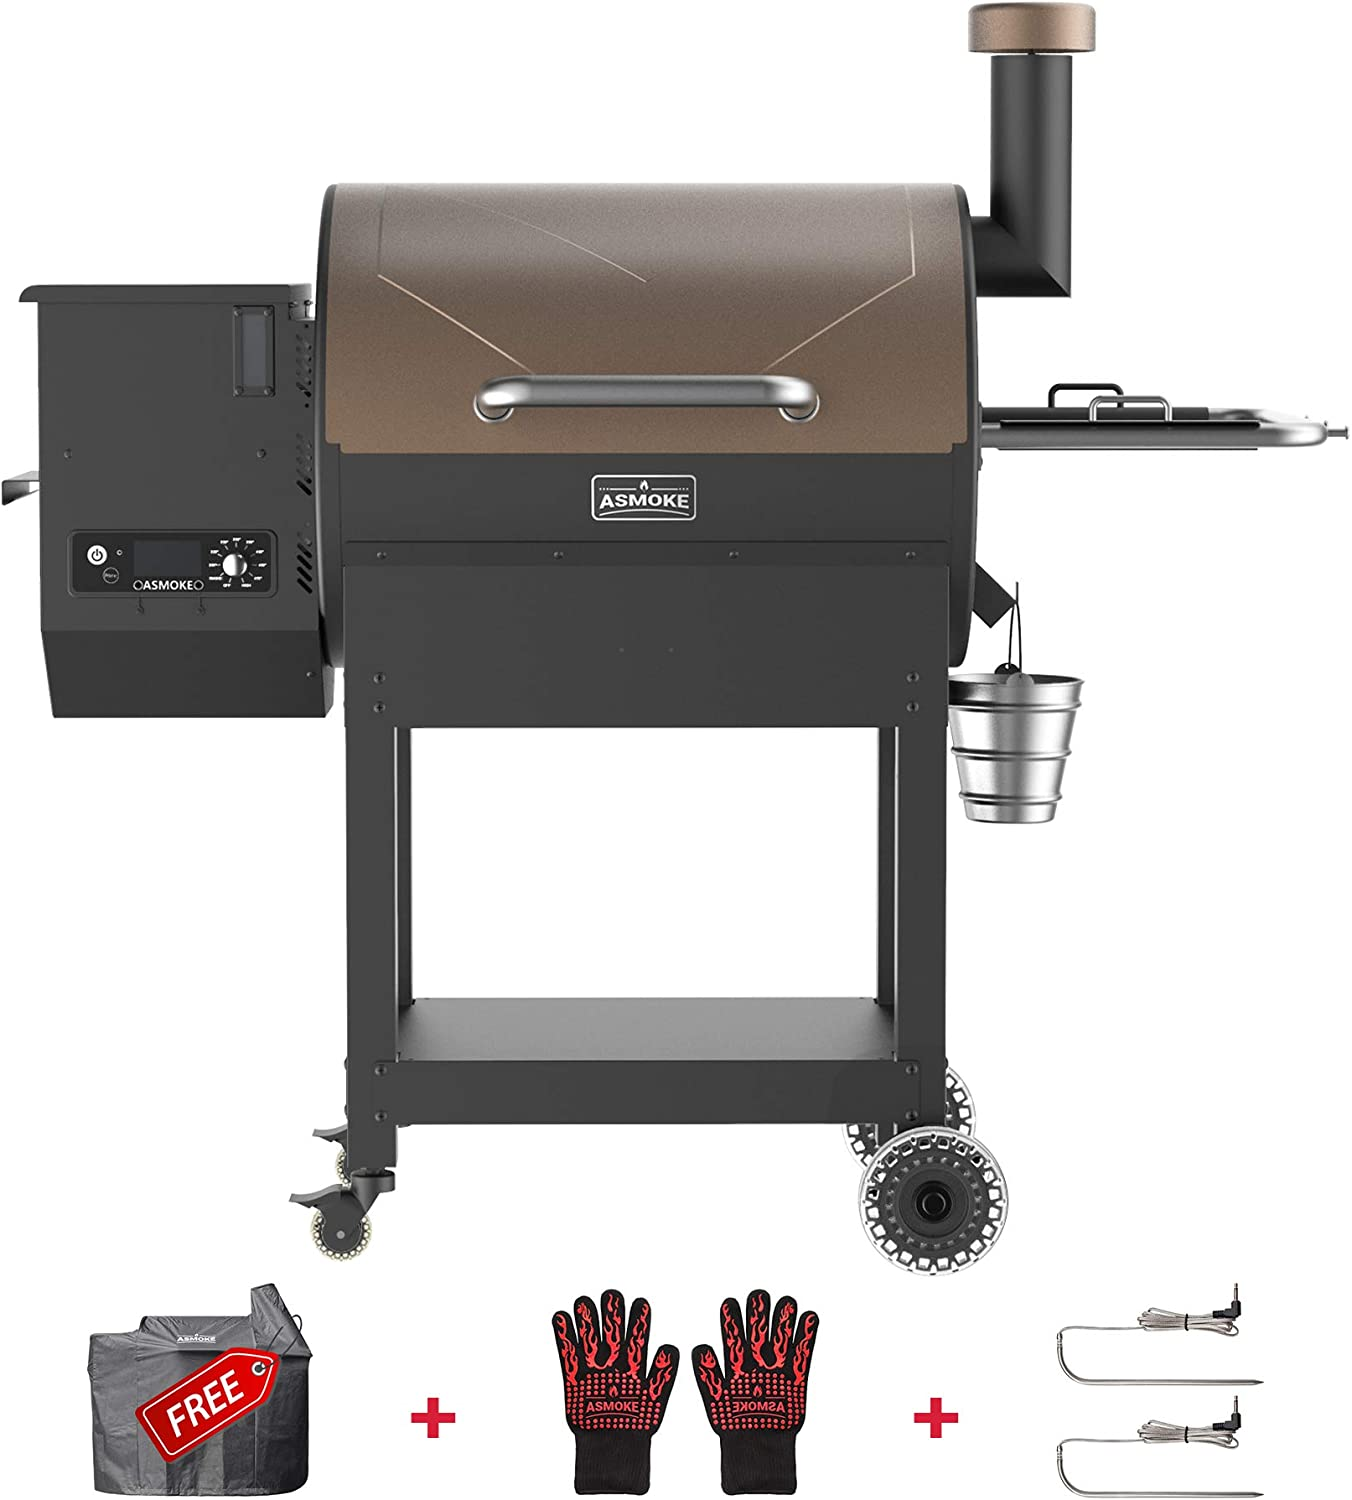 ASMOKE Pellet Grill and Smoker – Easy to Use and Clean